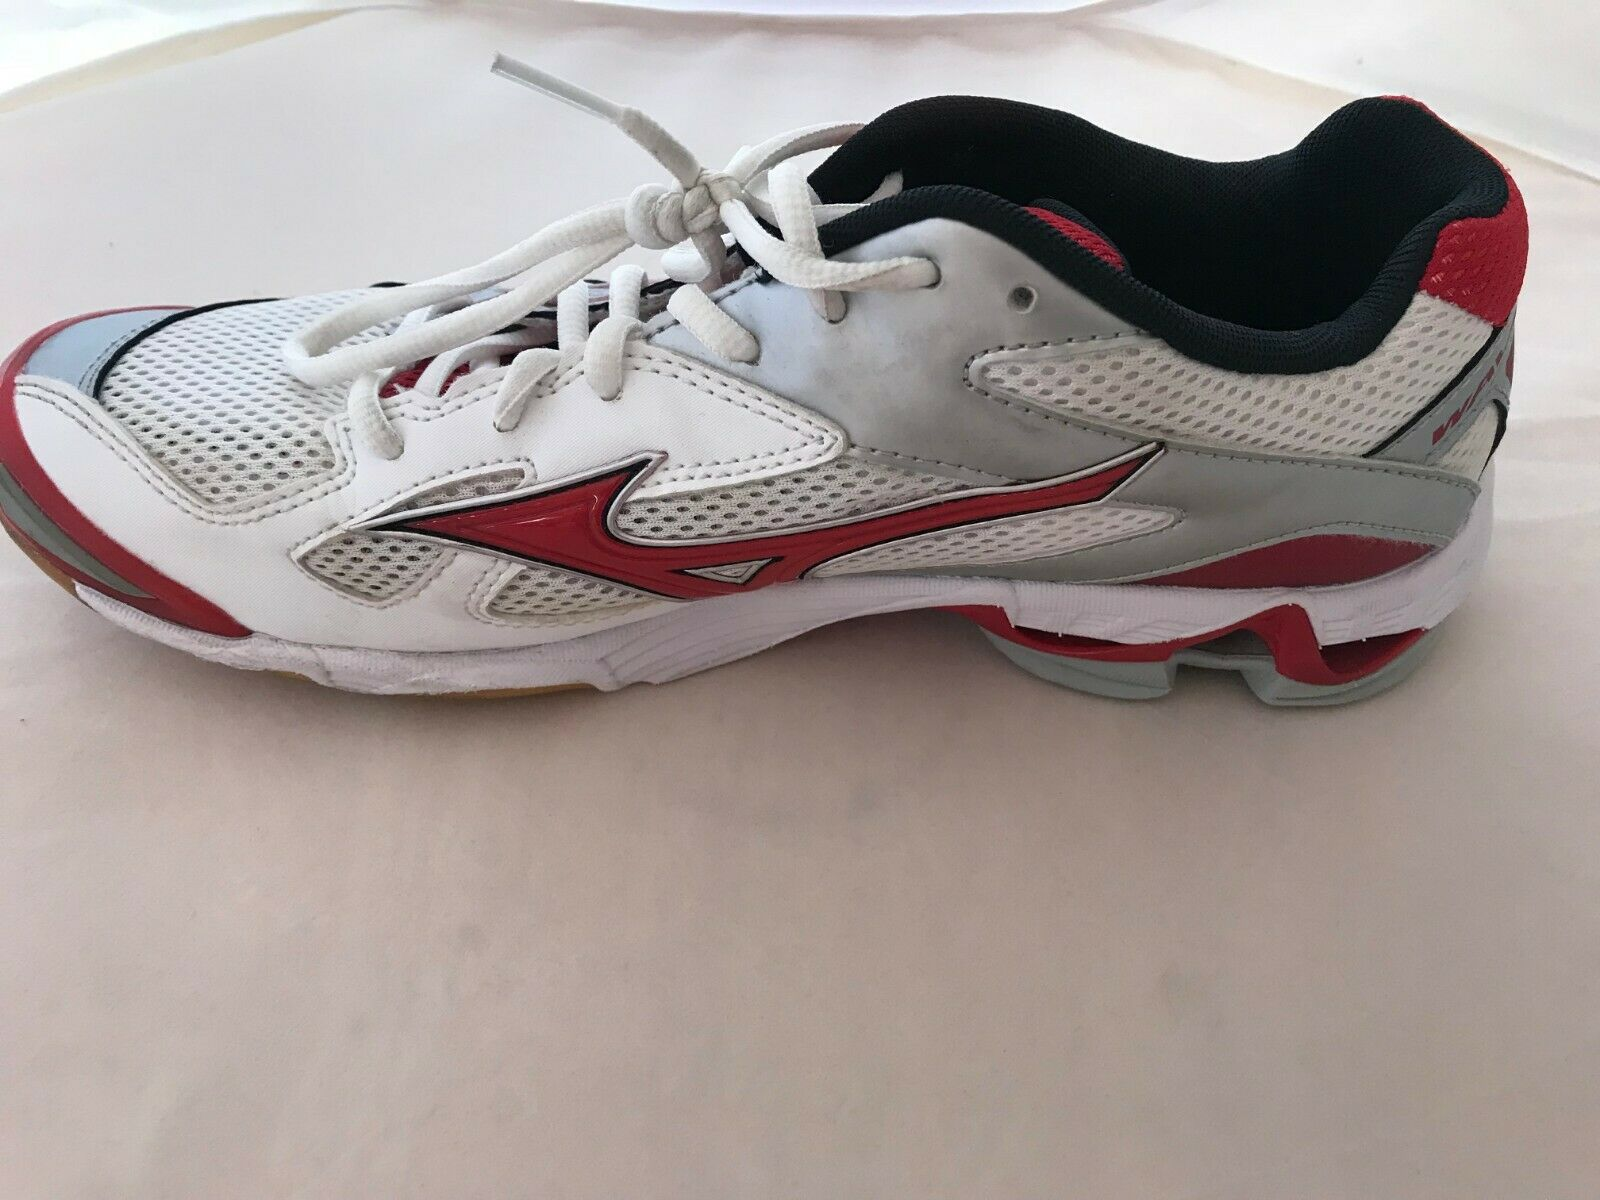 Mizuno Women's Wave Bolt 5 Volleyball shoes, Red White, Size 10.5